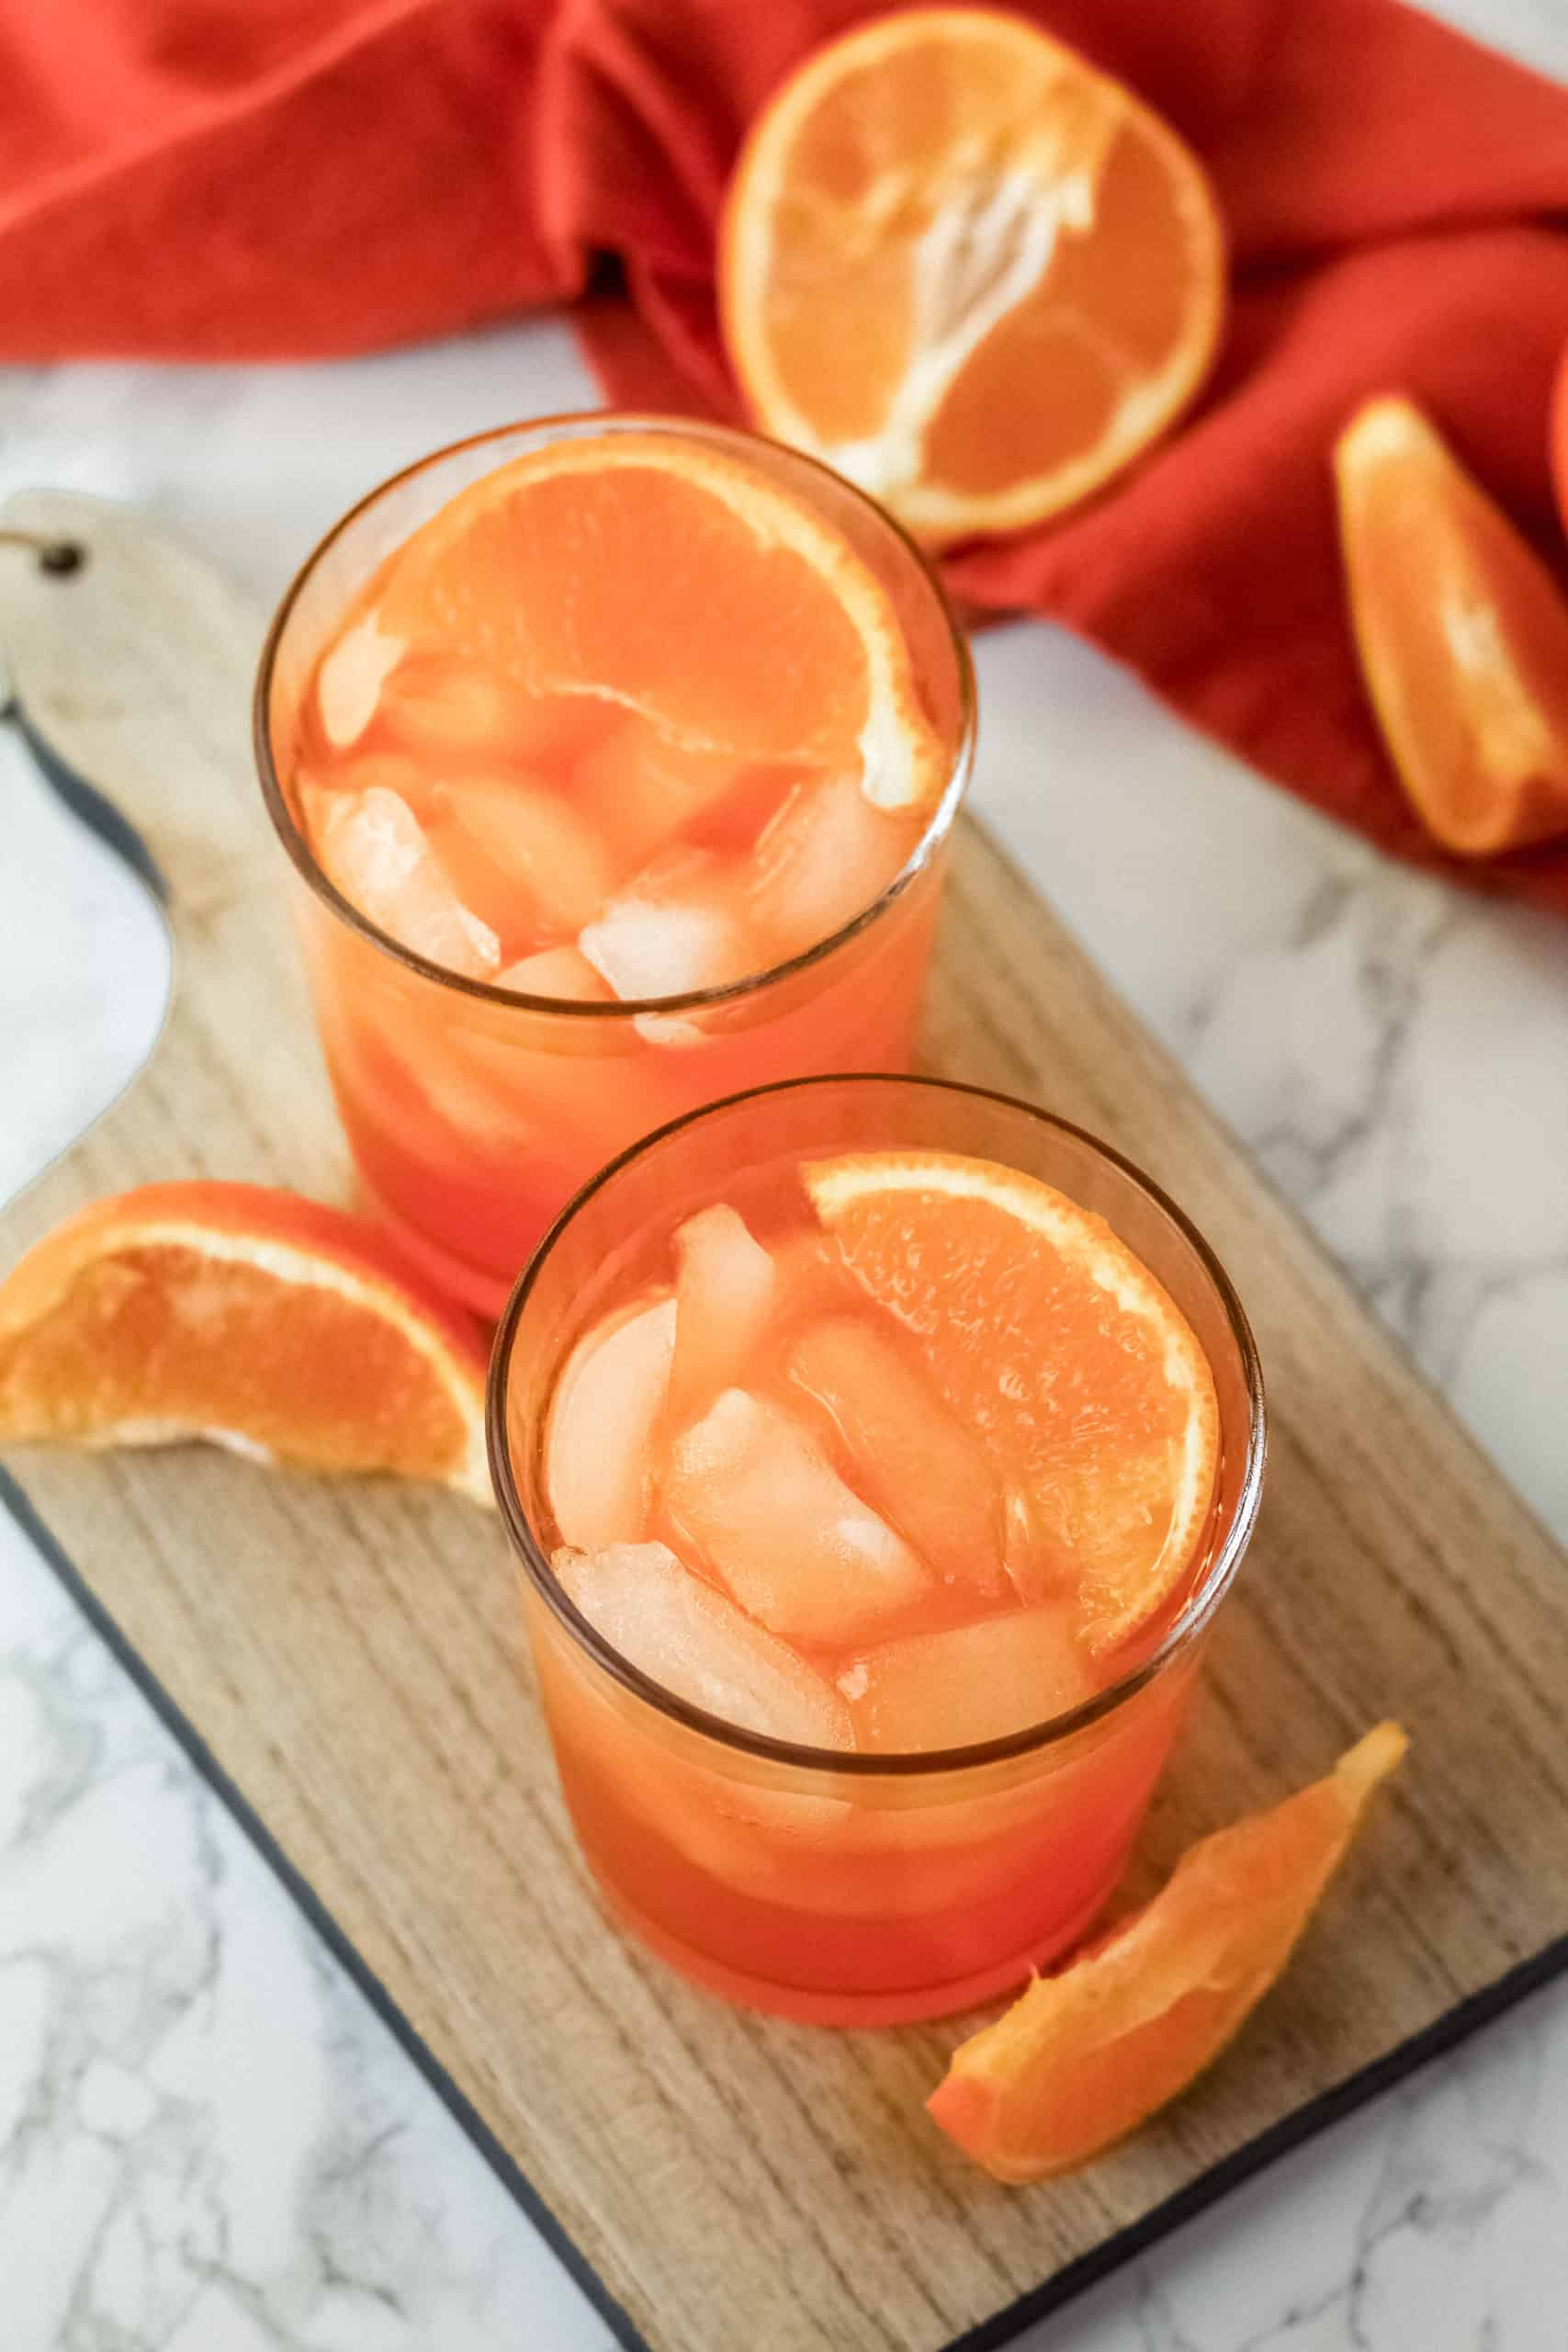 Top down view of orange slices on top of two orange thunder drinks